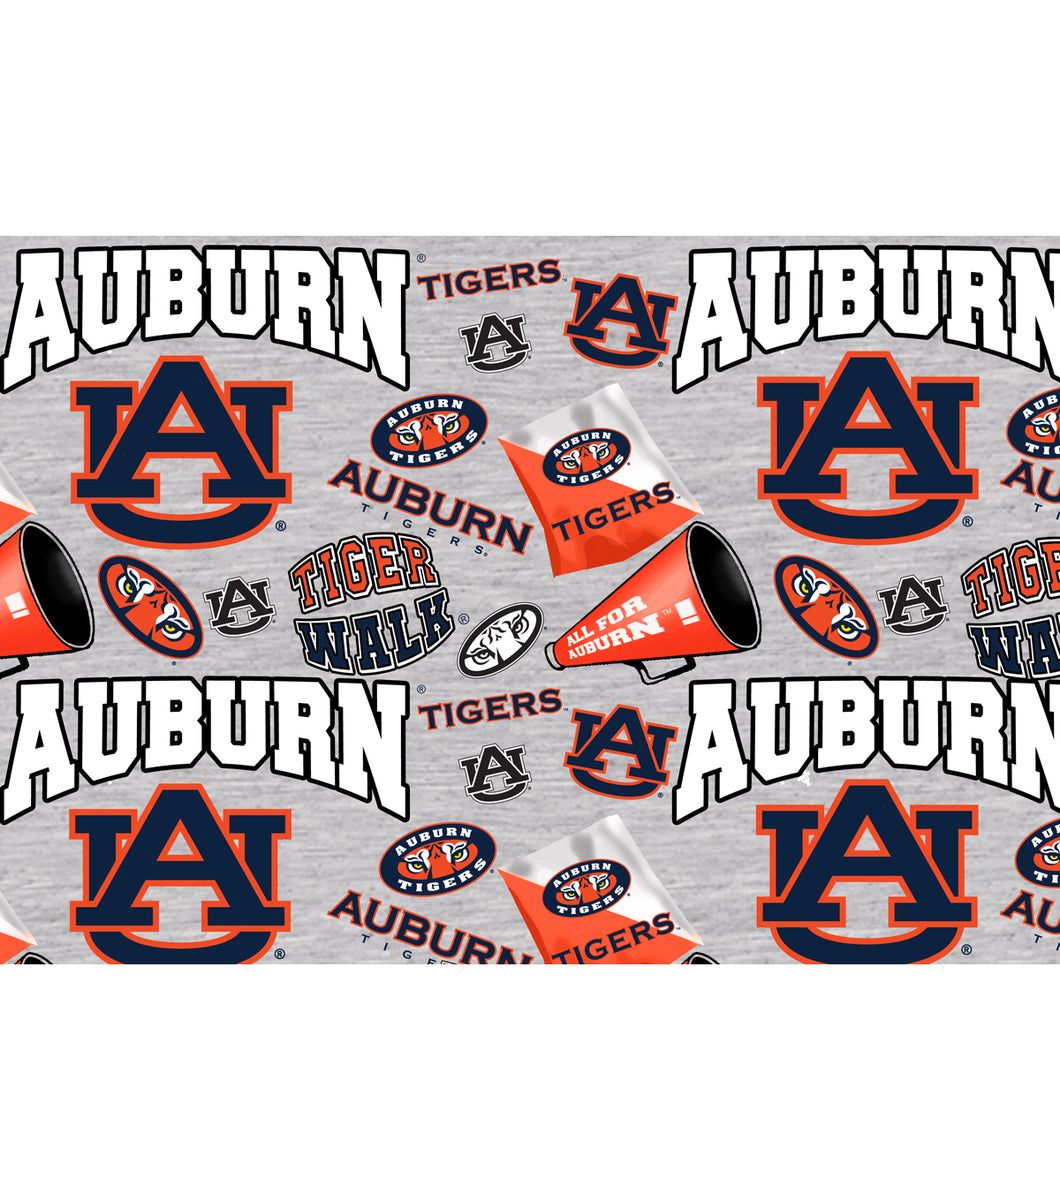 Auburn University Tigers Cotton Collegiate Mascot